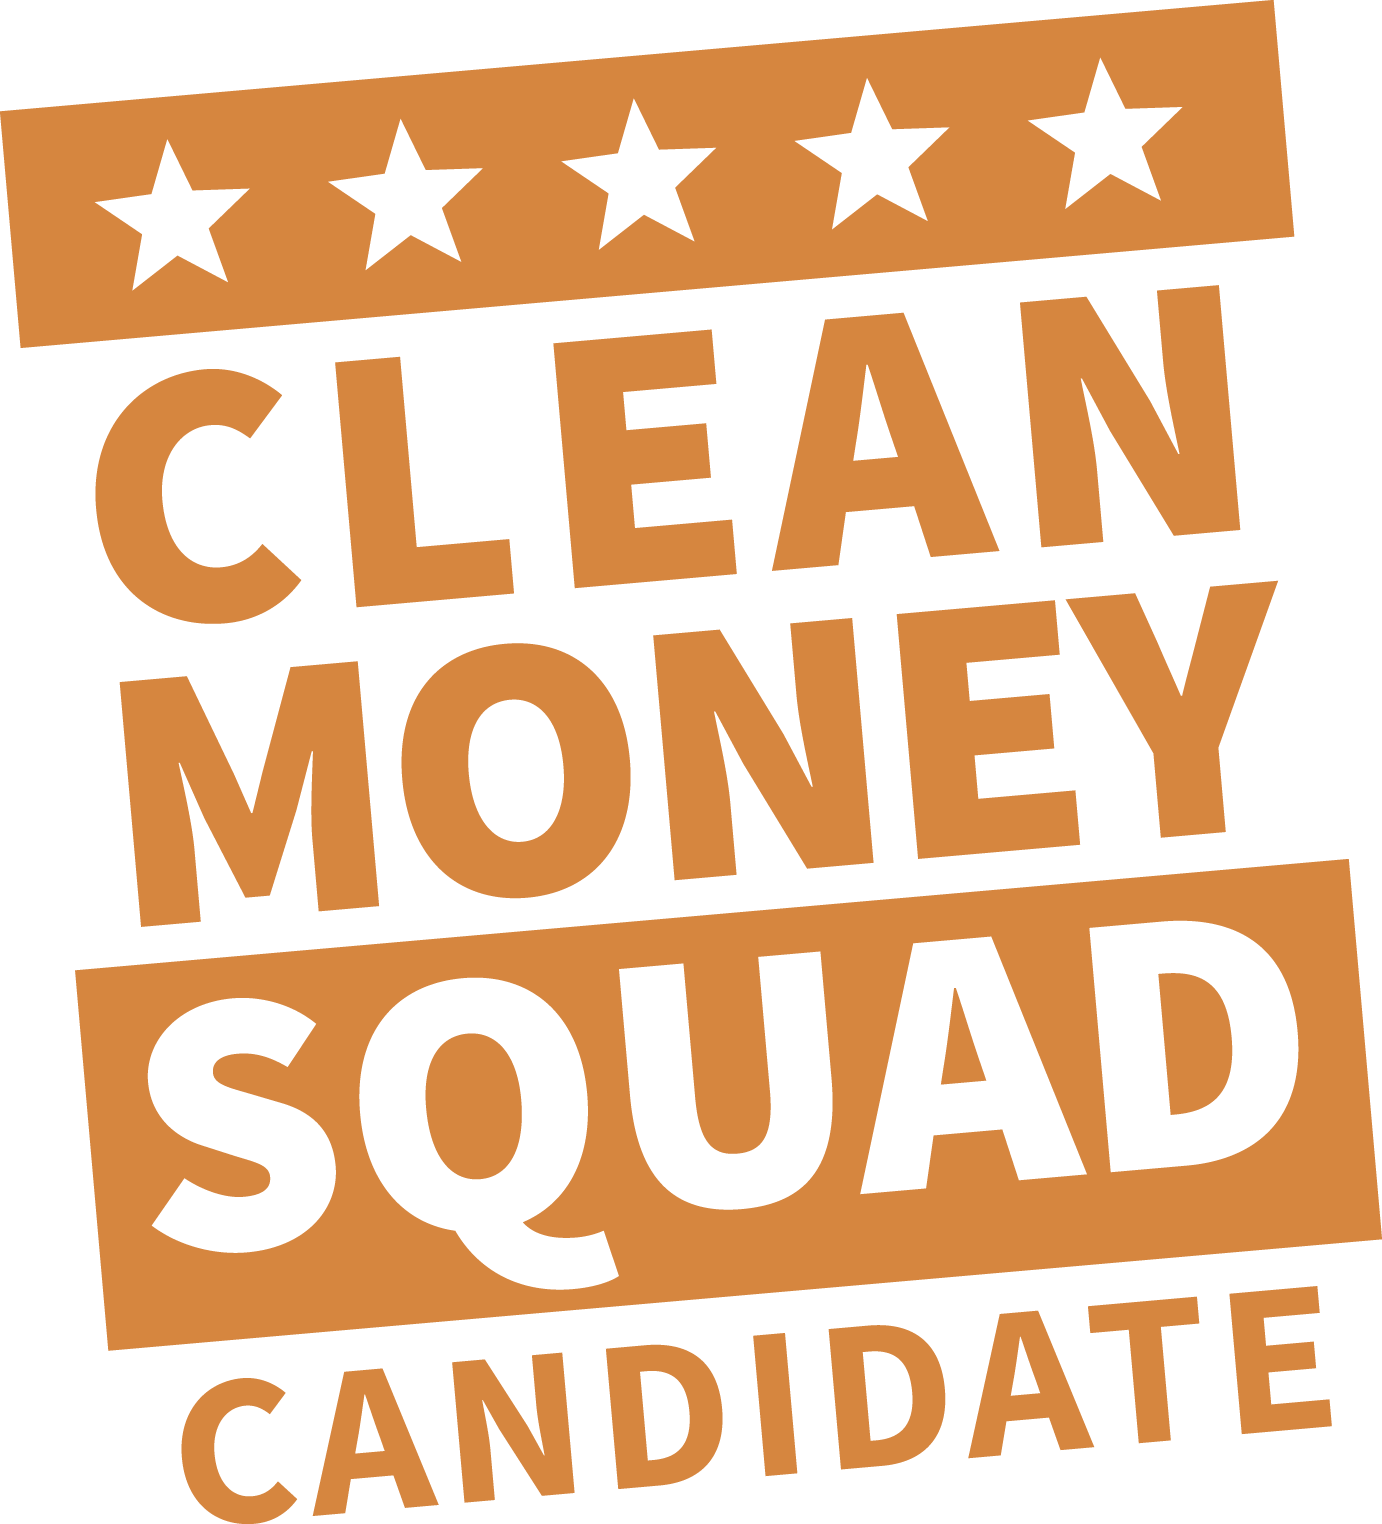 cleanmoneysquad-candidate.png